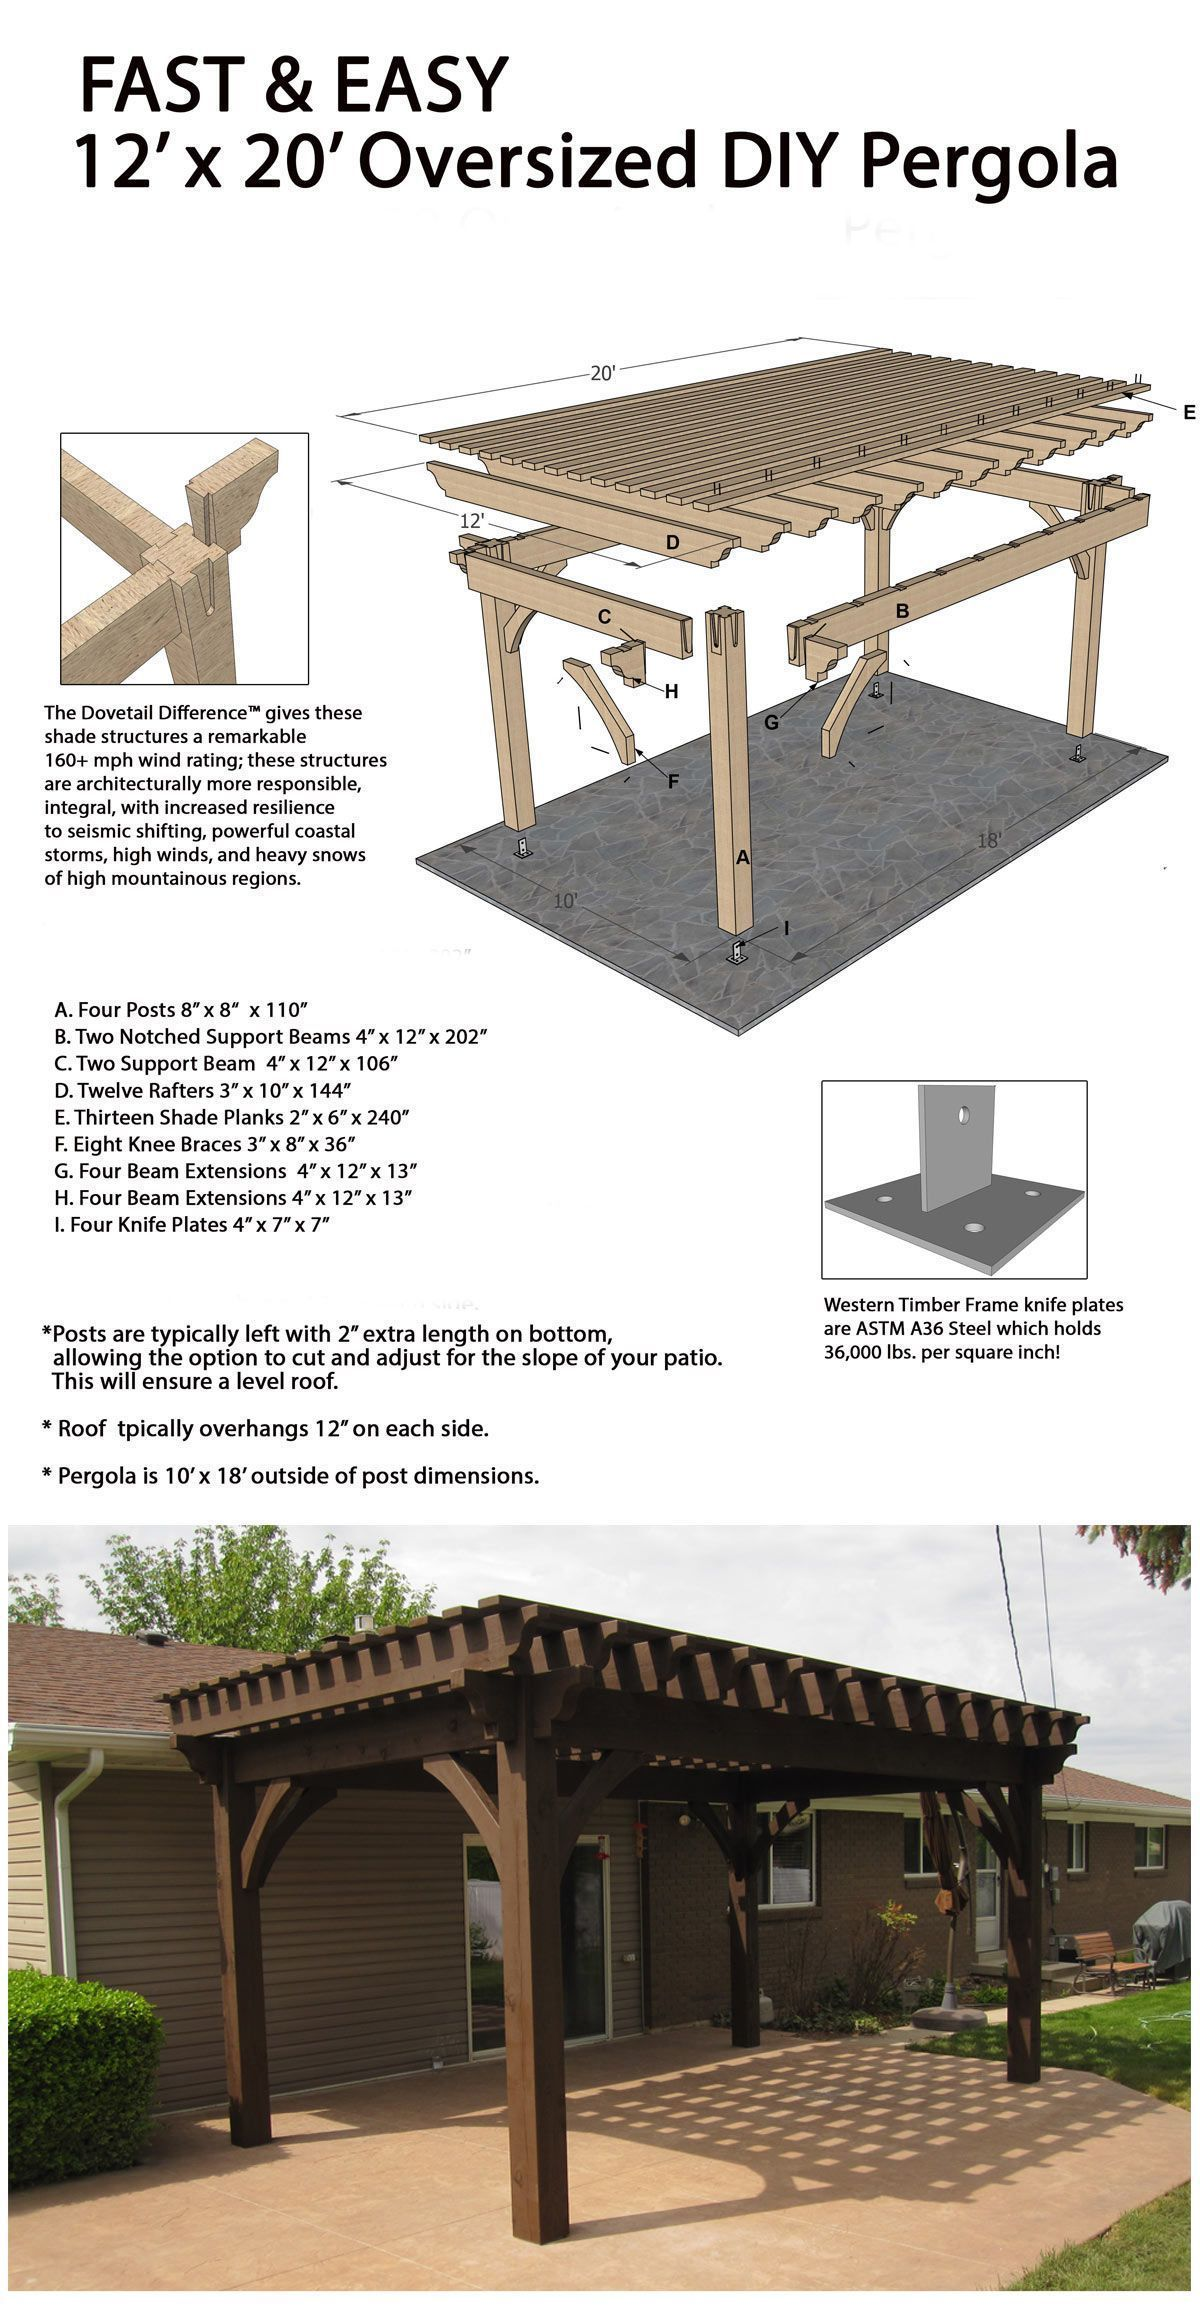 Easily Build a Fast DIY Beautiful Backyard Shade Structure in